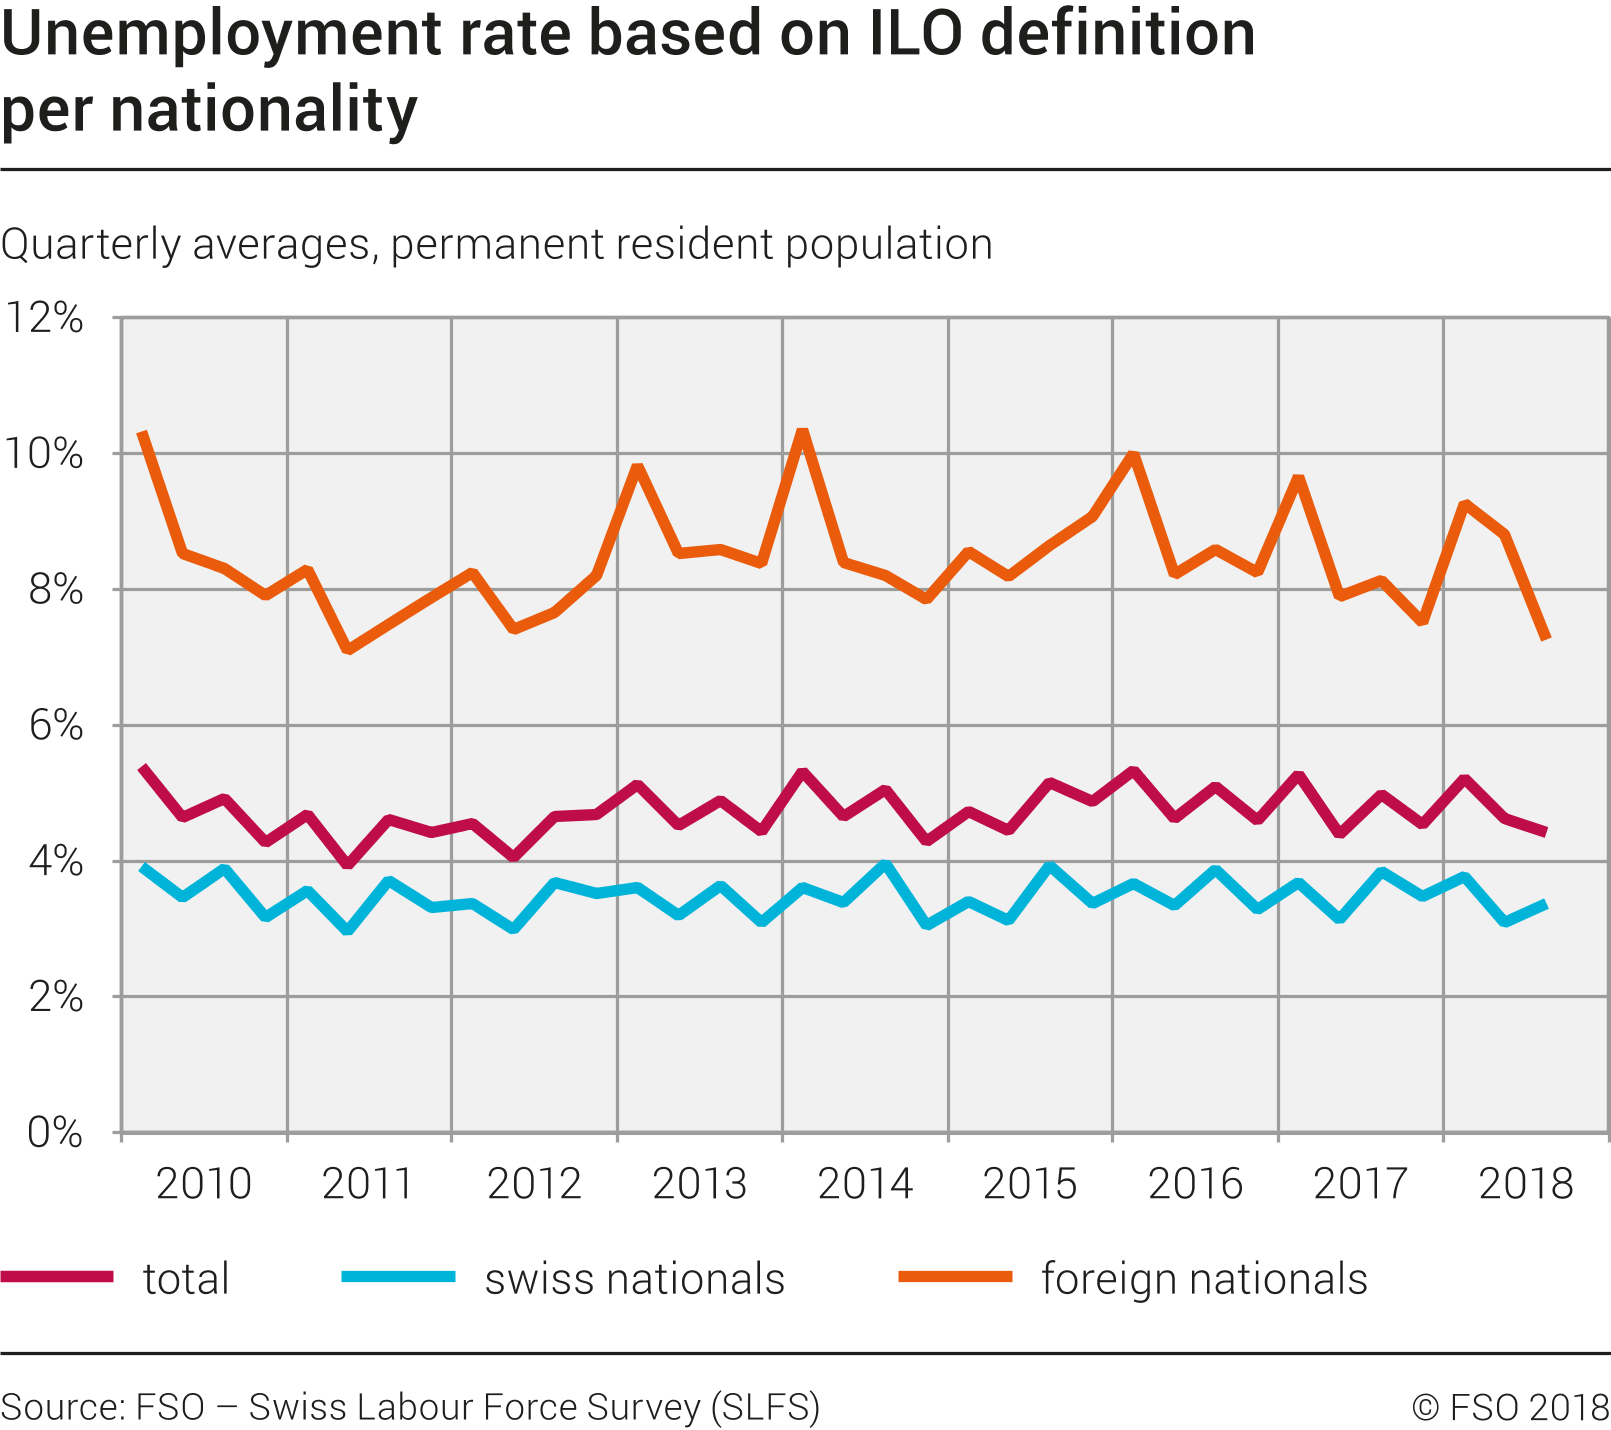 unemployment rate based on ilo definition per nationality - 1.1.2010